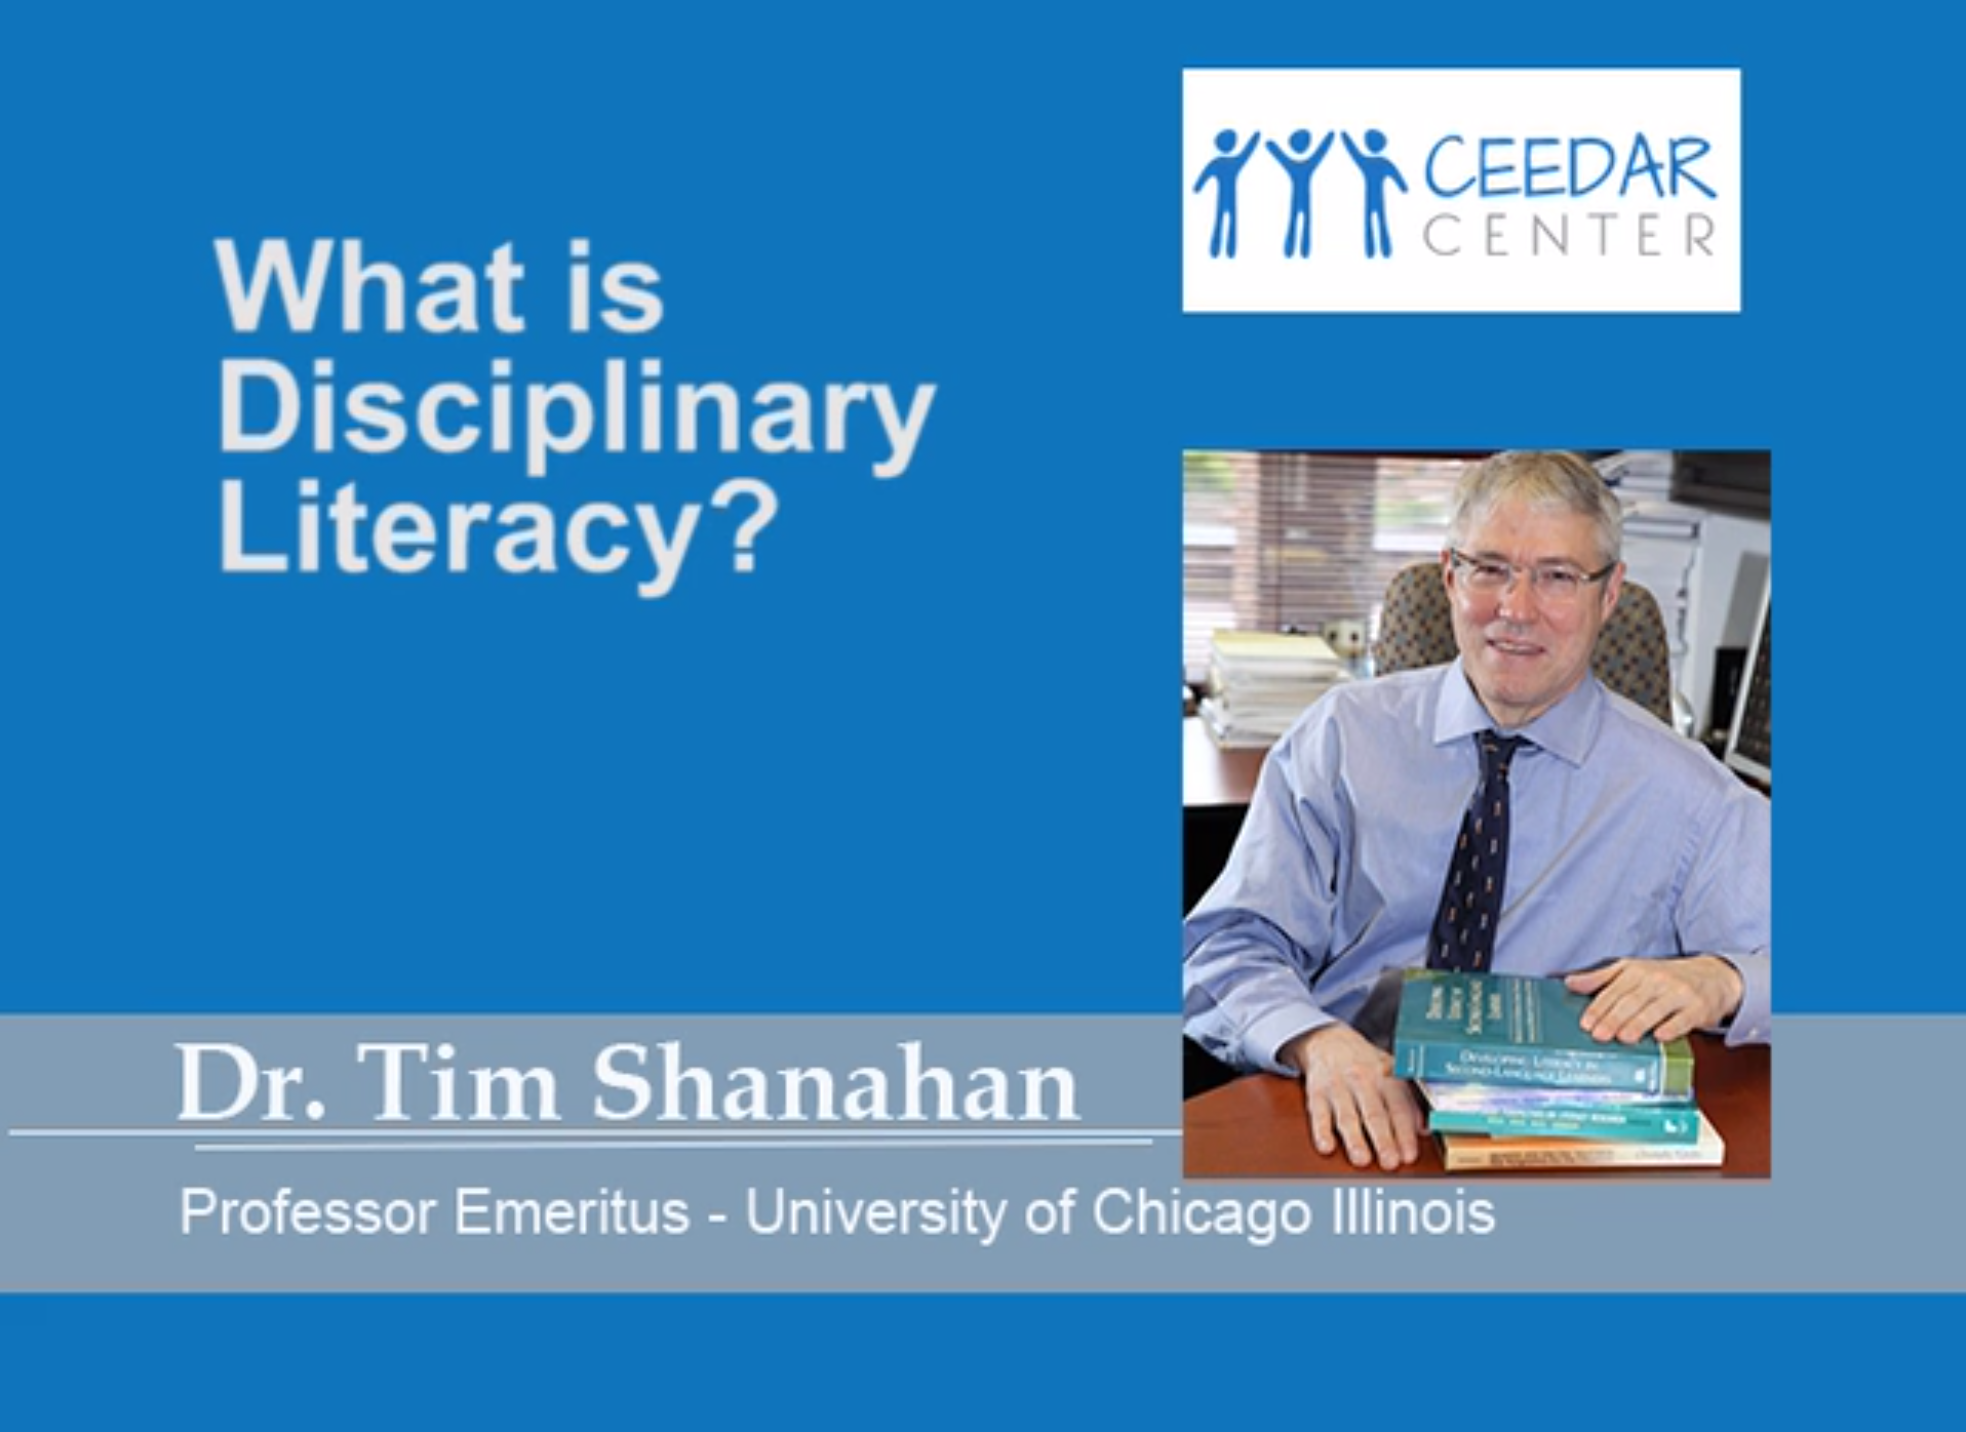 Dr. Tim Shanahan - What is Disciplinary Literacy?